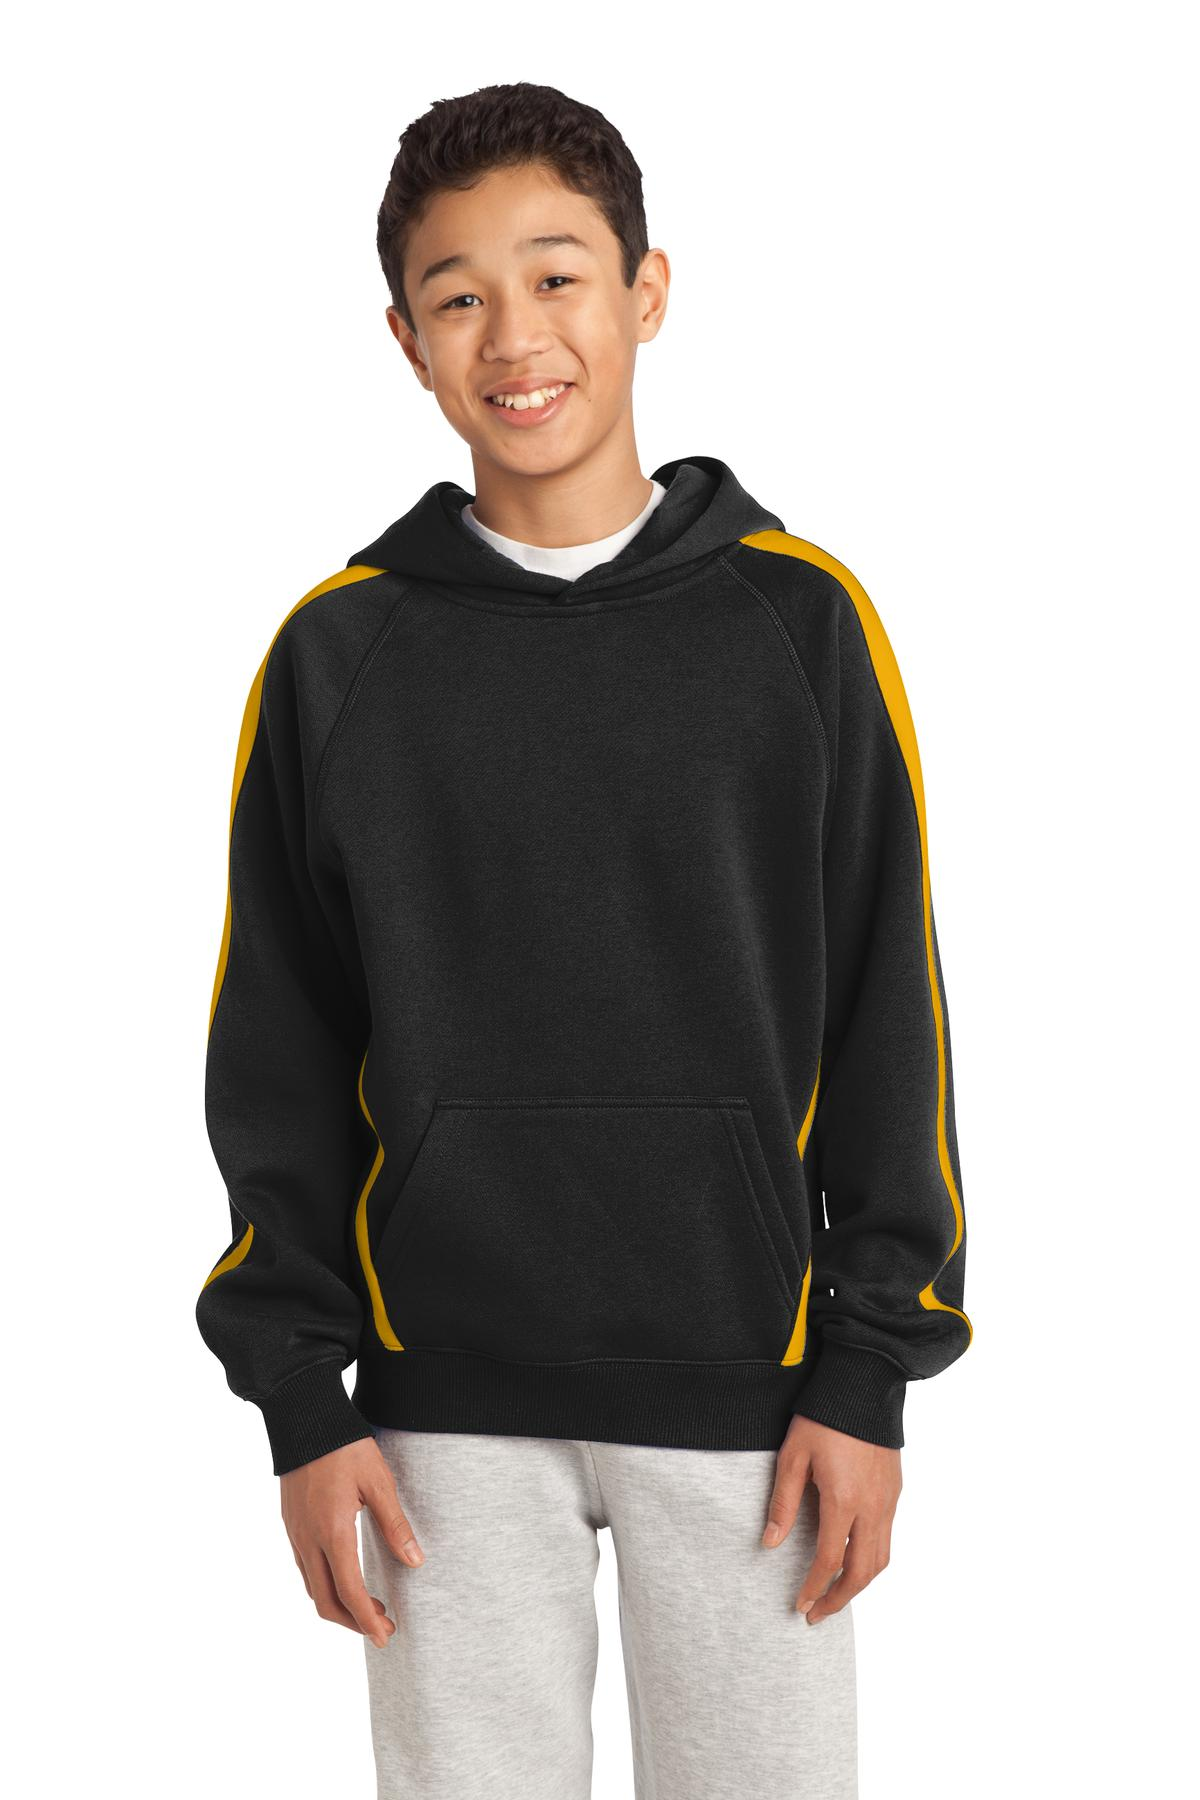 Sport-Tek Youth Sleeve Stripe Pullover Hooded Sweatshirt. YST265